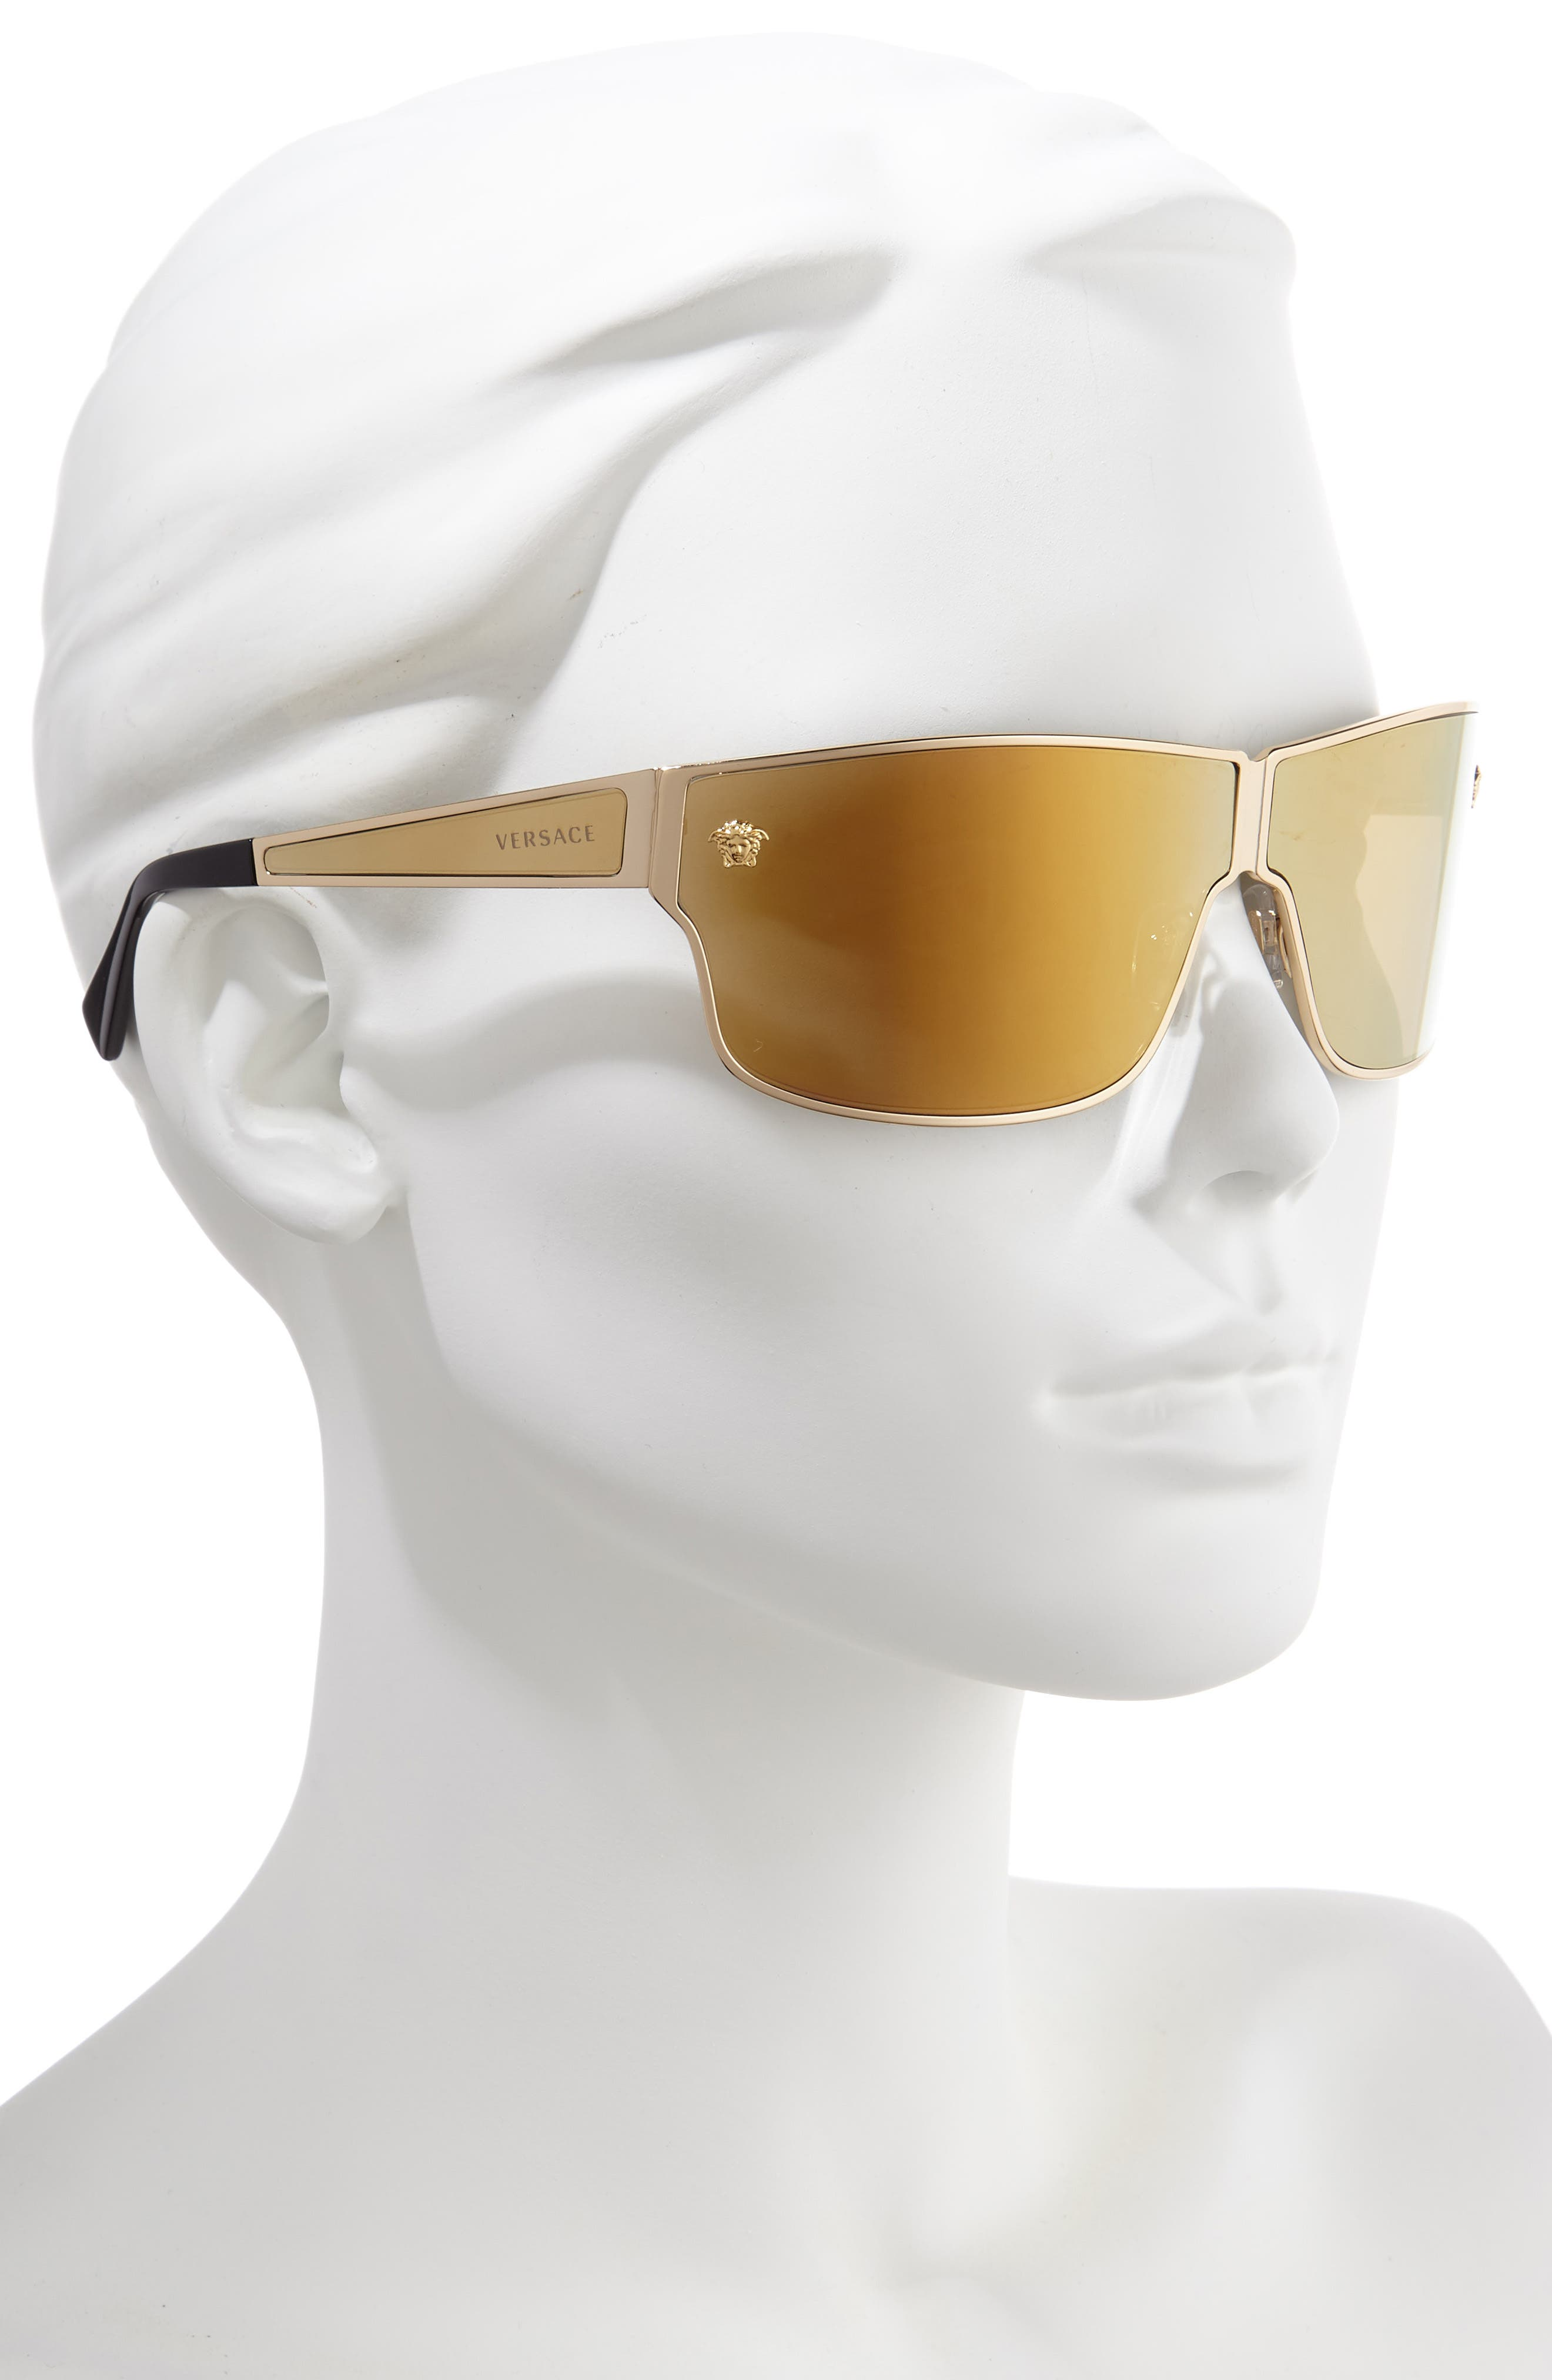 Medusa 72mm Mirrored Shield Sunglasses,                             Alternate thumbnail 2, color,                             GOLD/ GOLD MIRROR